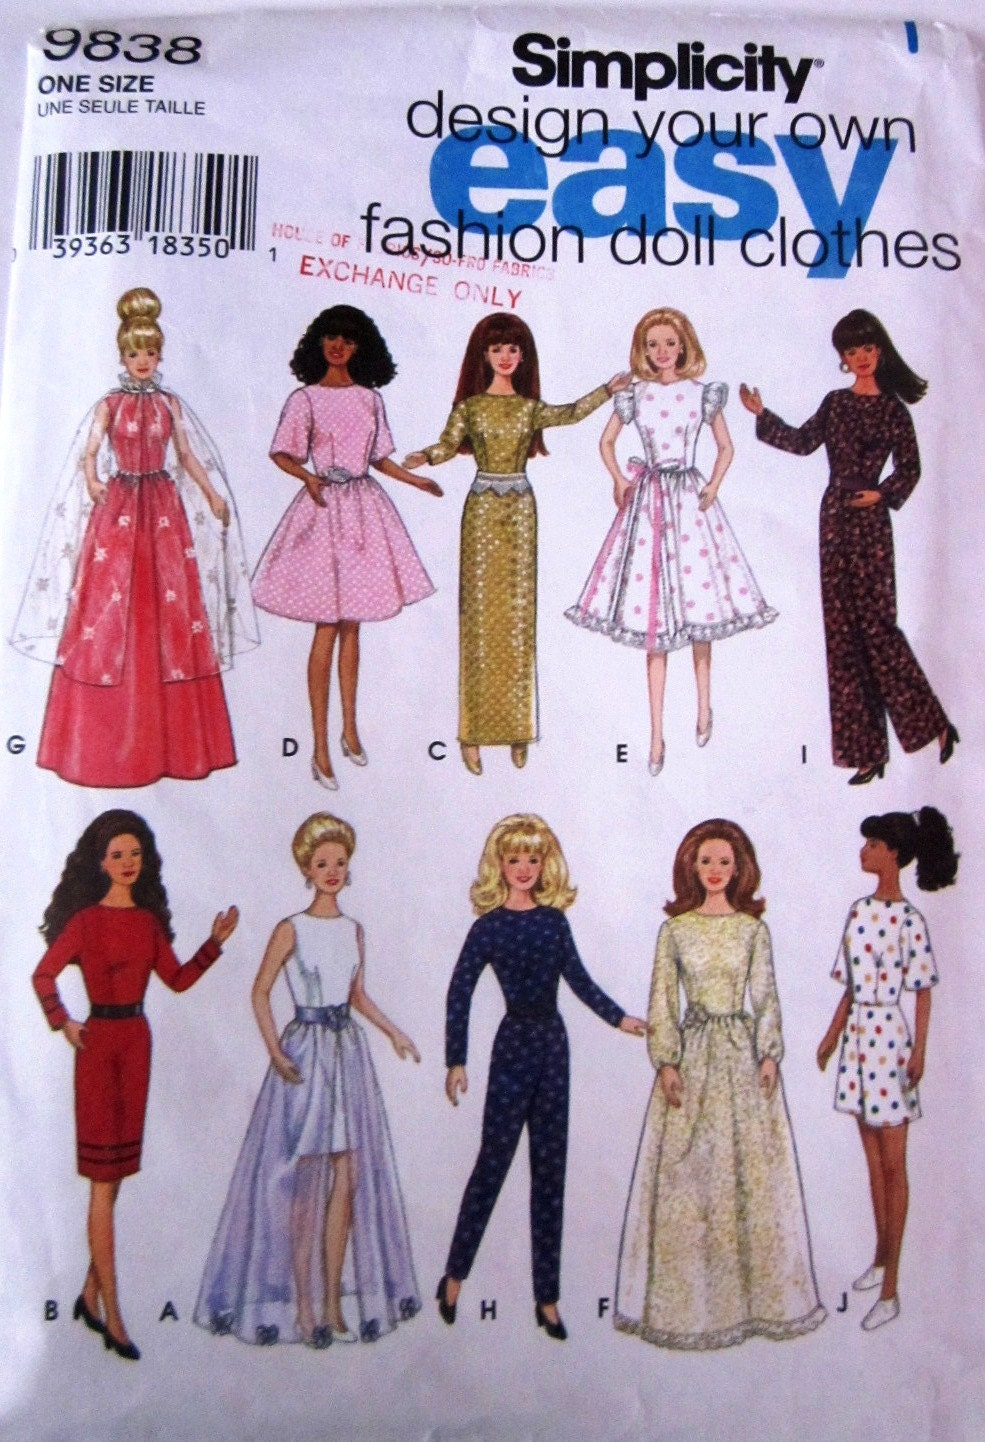 Simplicity 9838 Barbie Doll Clothes Pattern